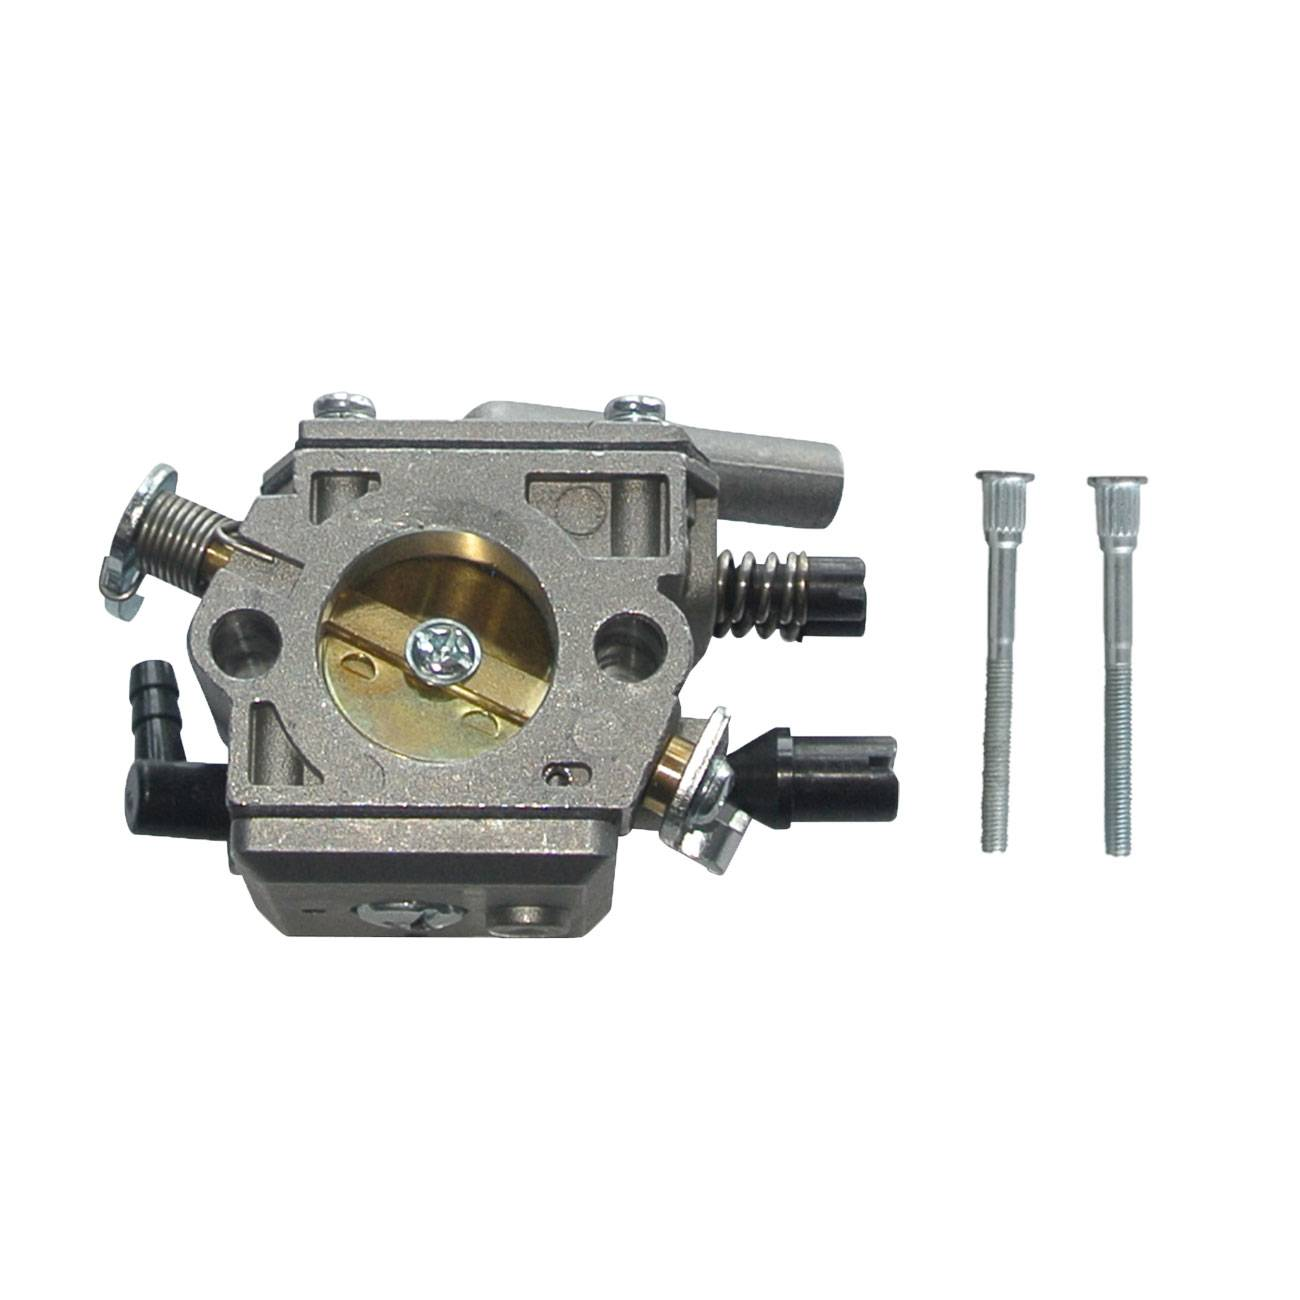 Bolt&New Chainsaw Carburetor Carb To Fit Stihl 038 MS380 MS381